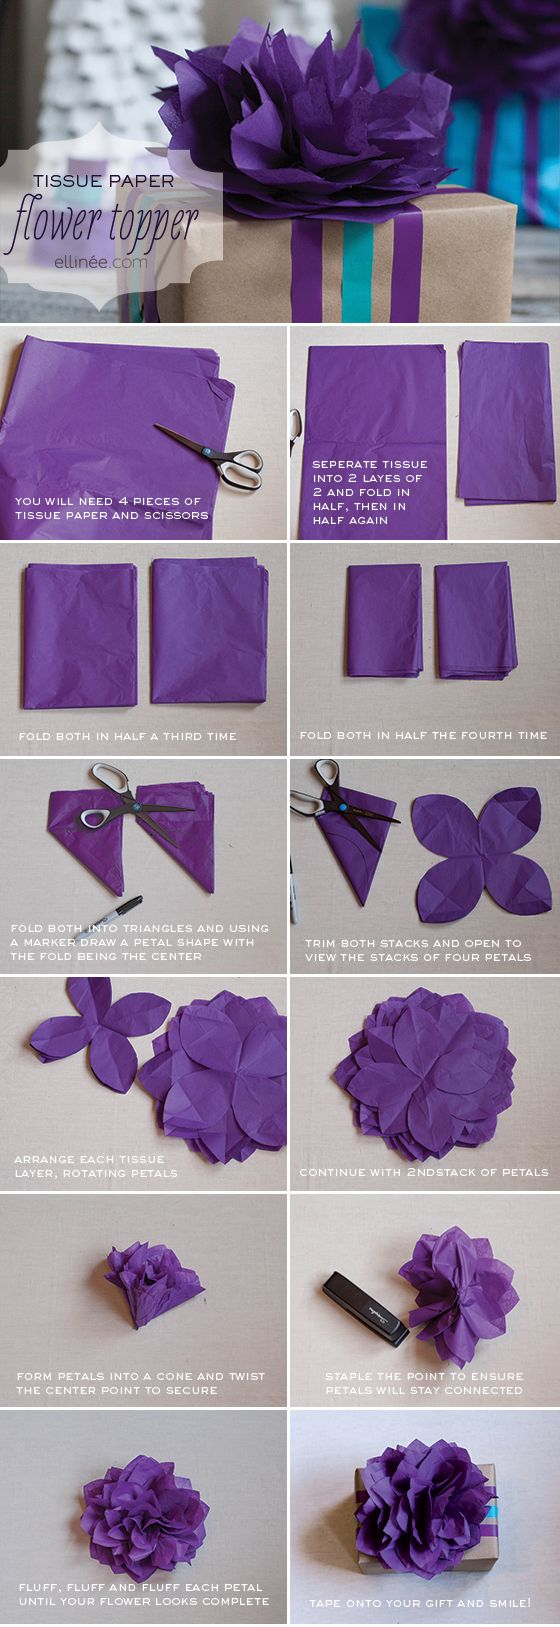 DIY Tissue Paper Topper Tutorial